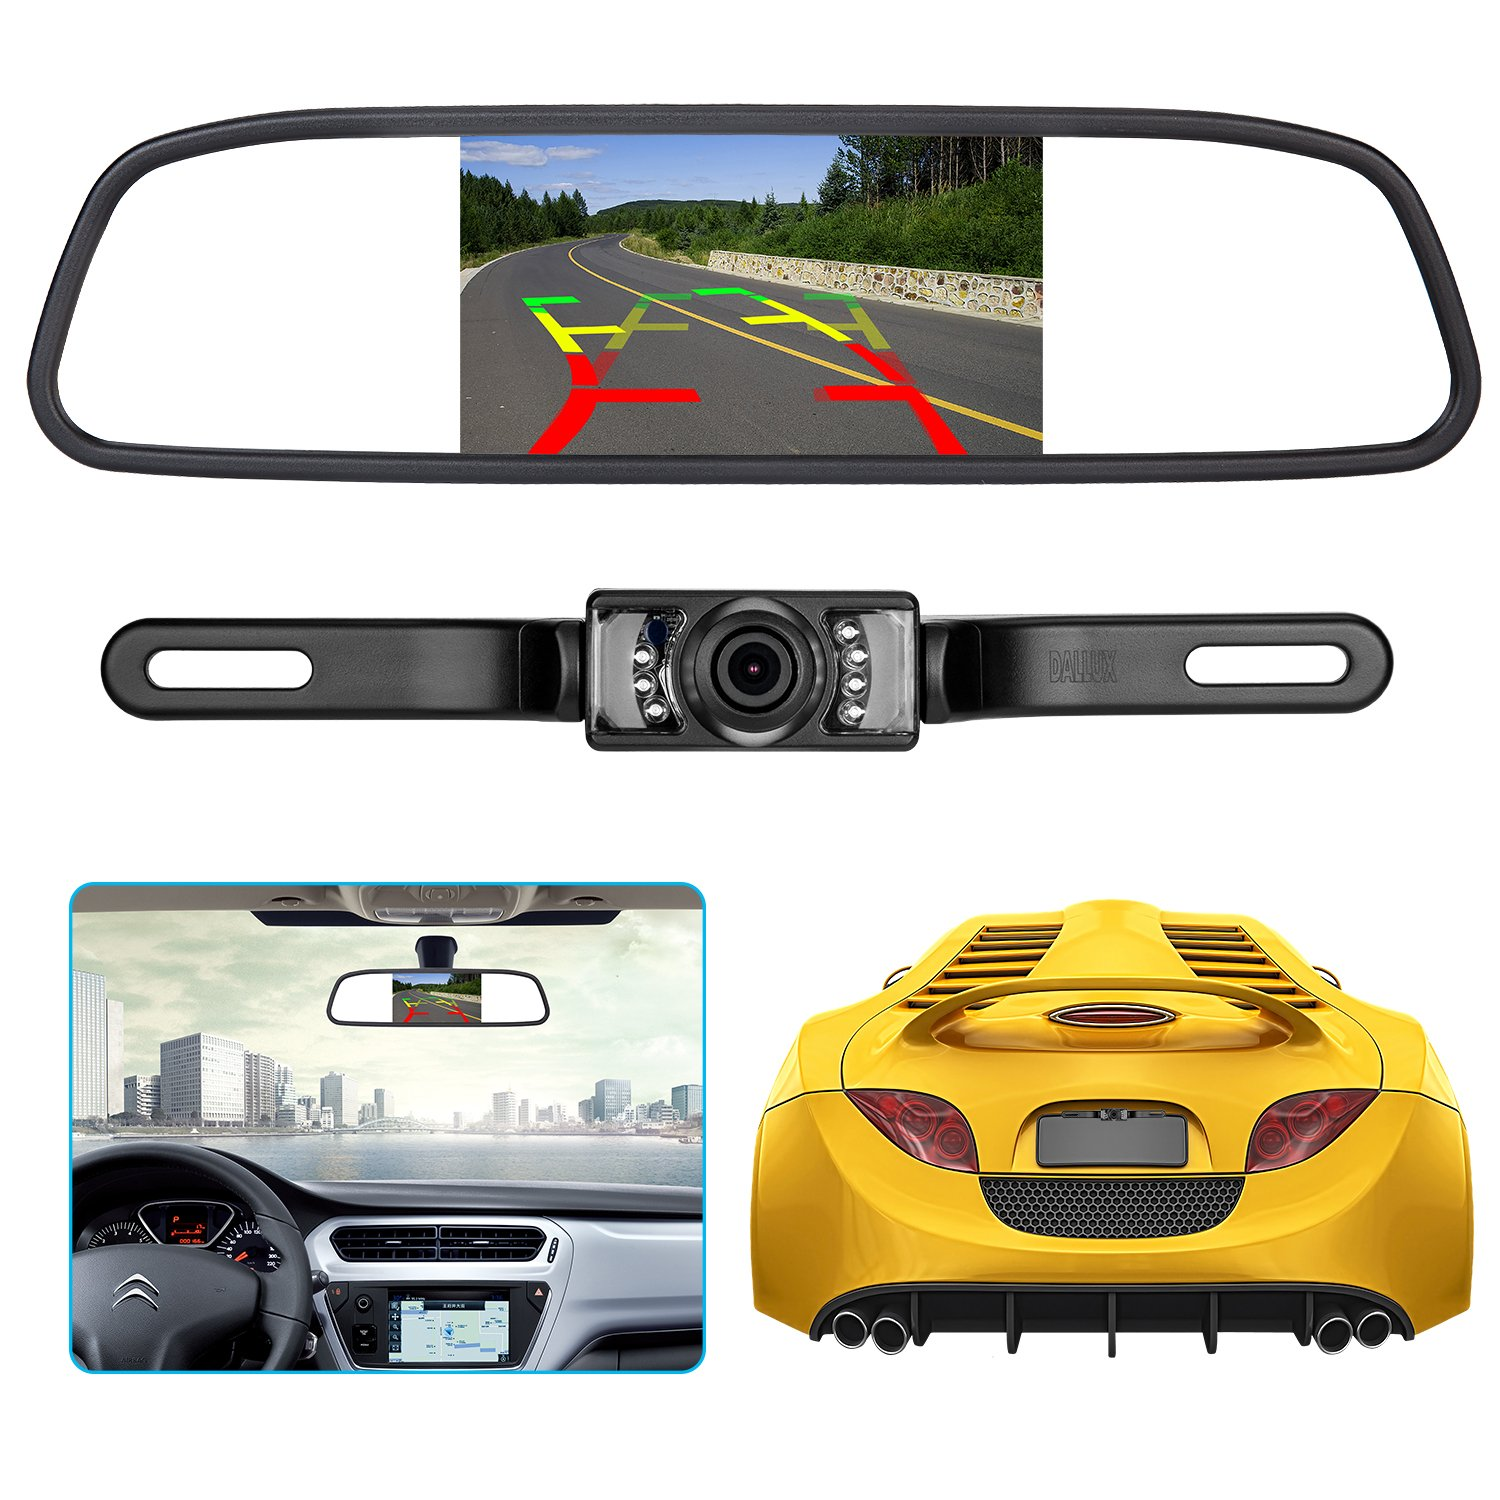 Backup Camera and Rearview Mirror LCD Monitor kit,Car License Plate Waterproof Night Vision Rear-View HD Car Reverse Rearview Camera + 4.3